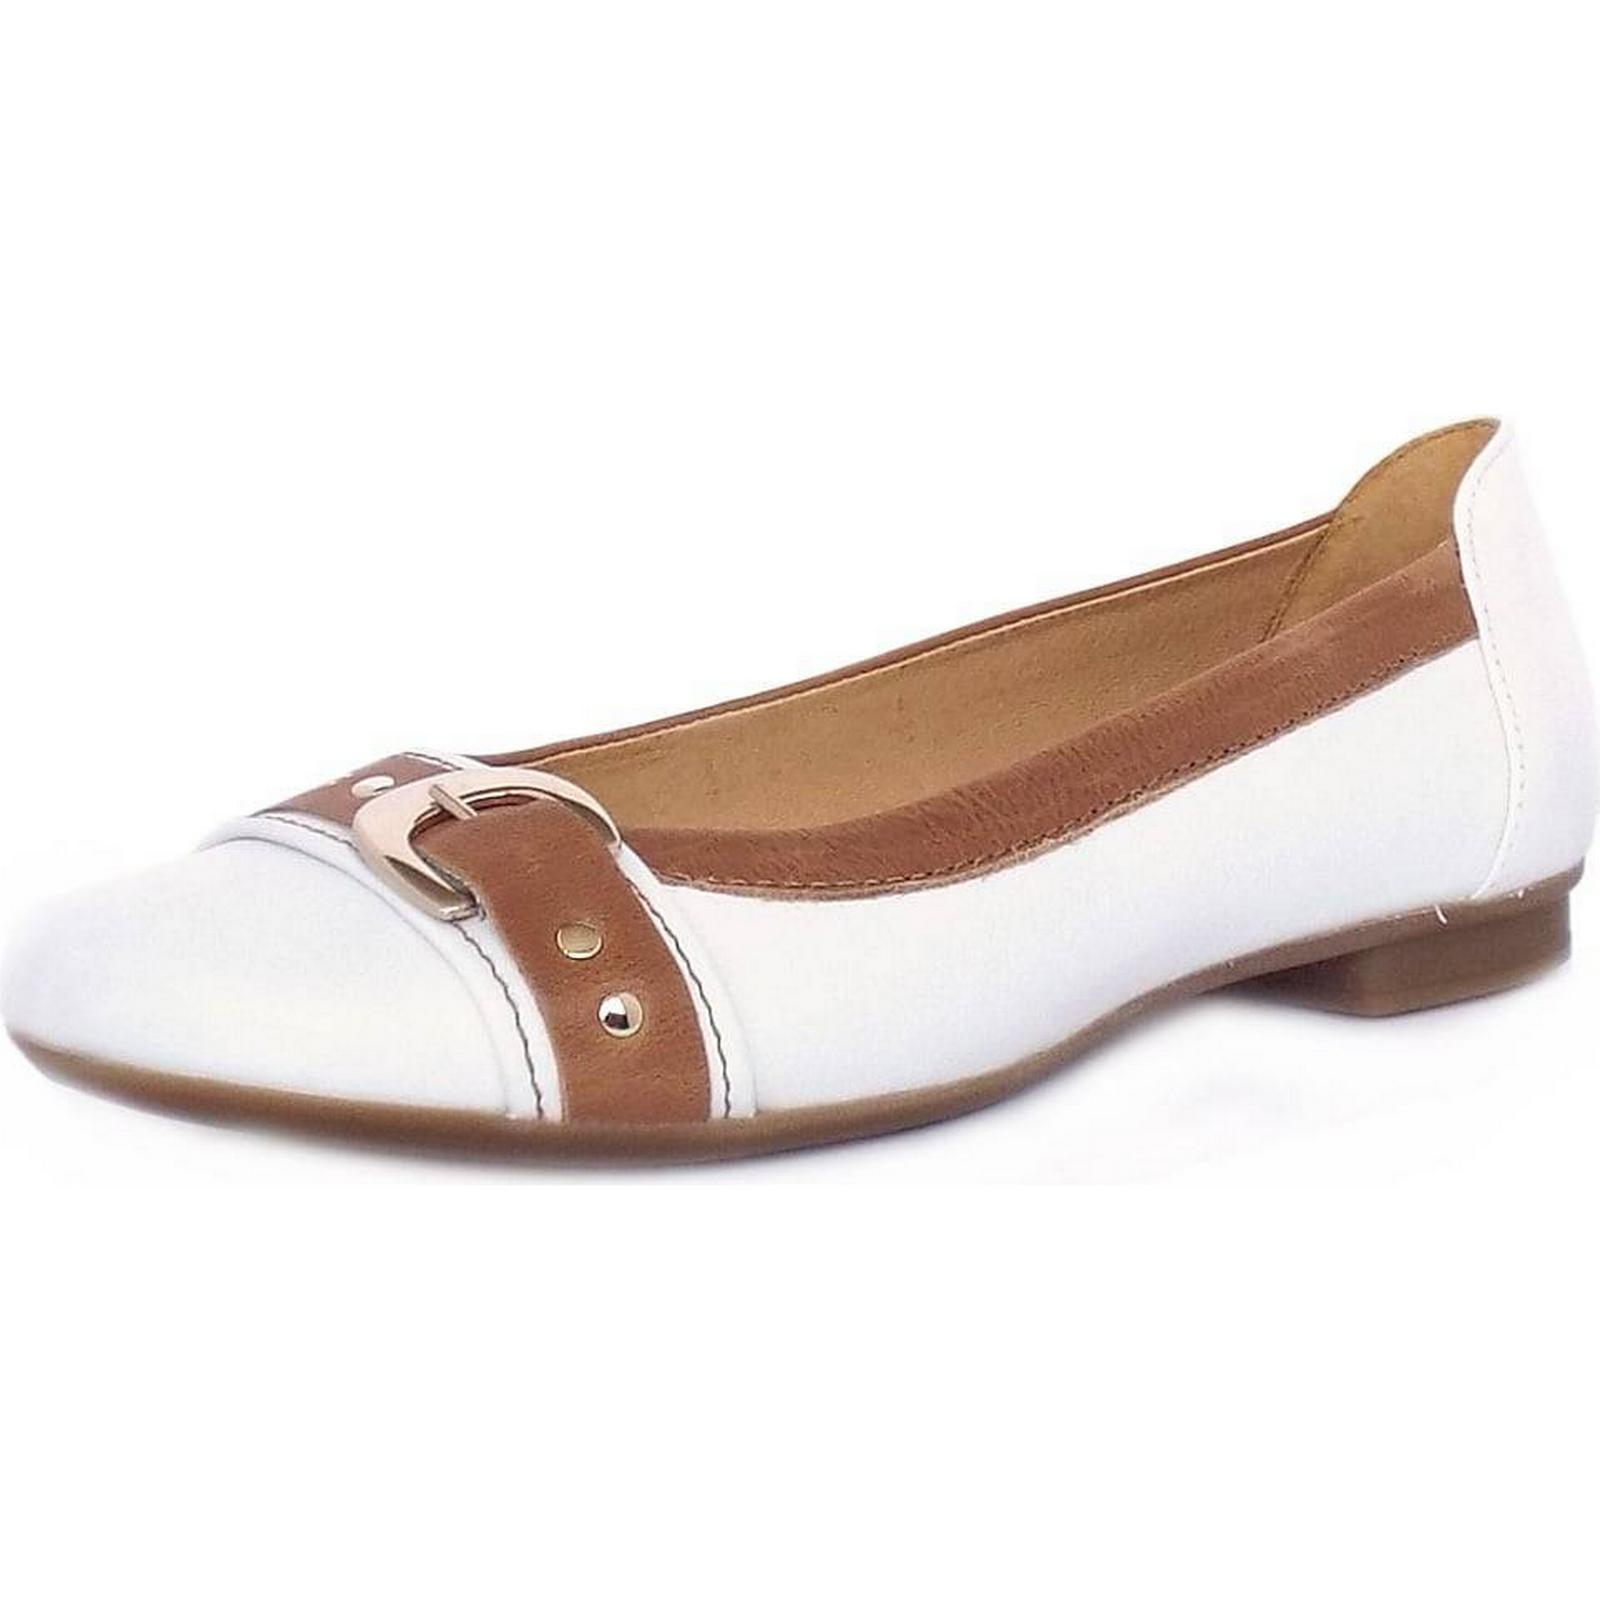 Gabor INDIANA GABOR 20MM Colour: CASUAL PUMPS Size: 6.5, Colour: 20MM WHITE 82f102